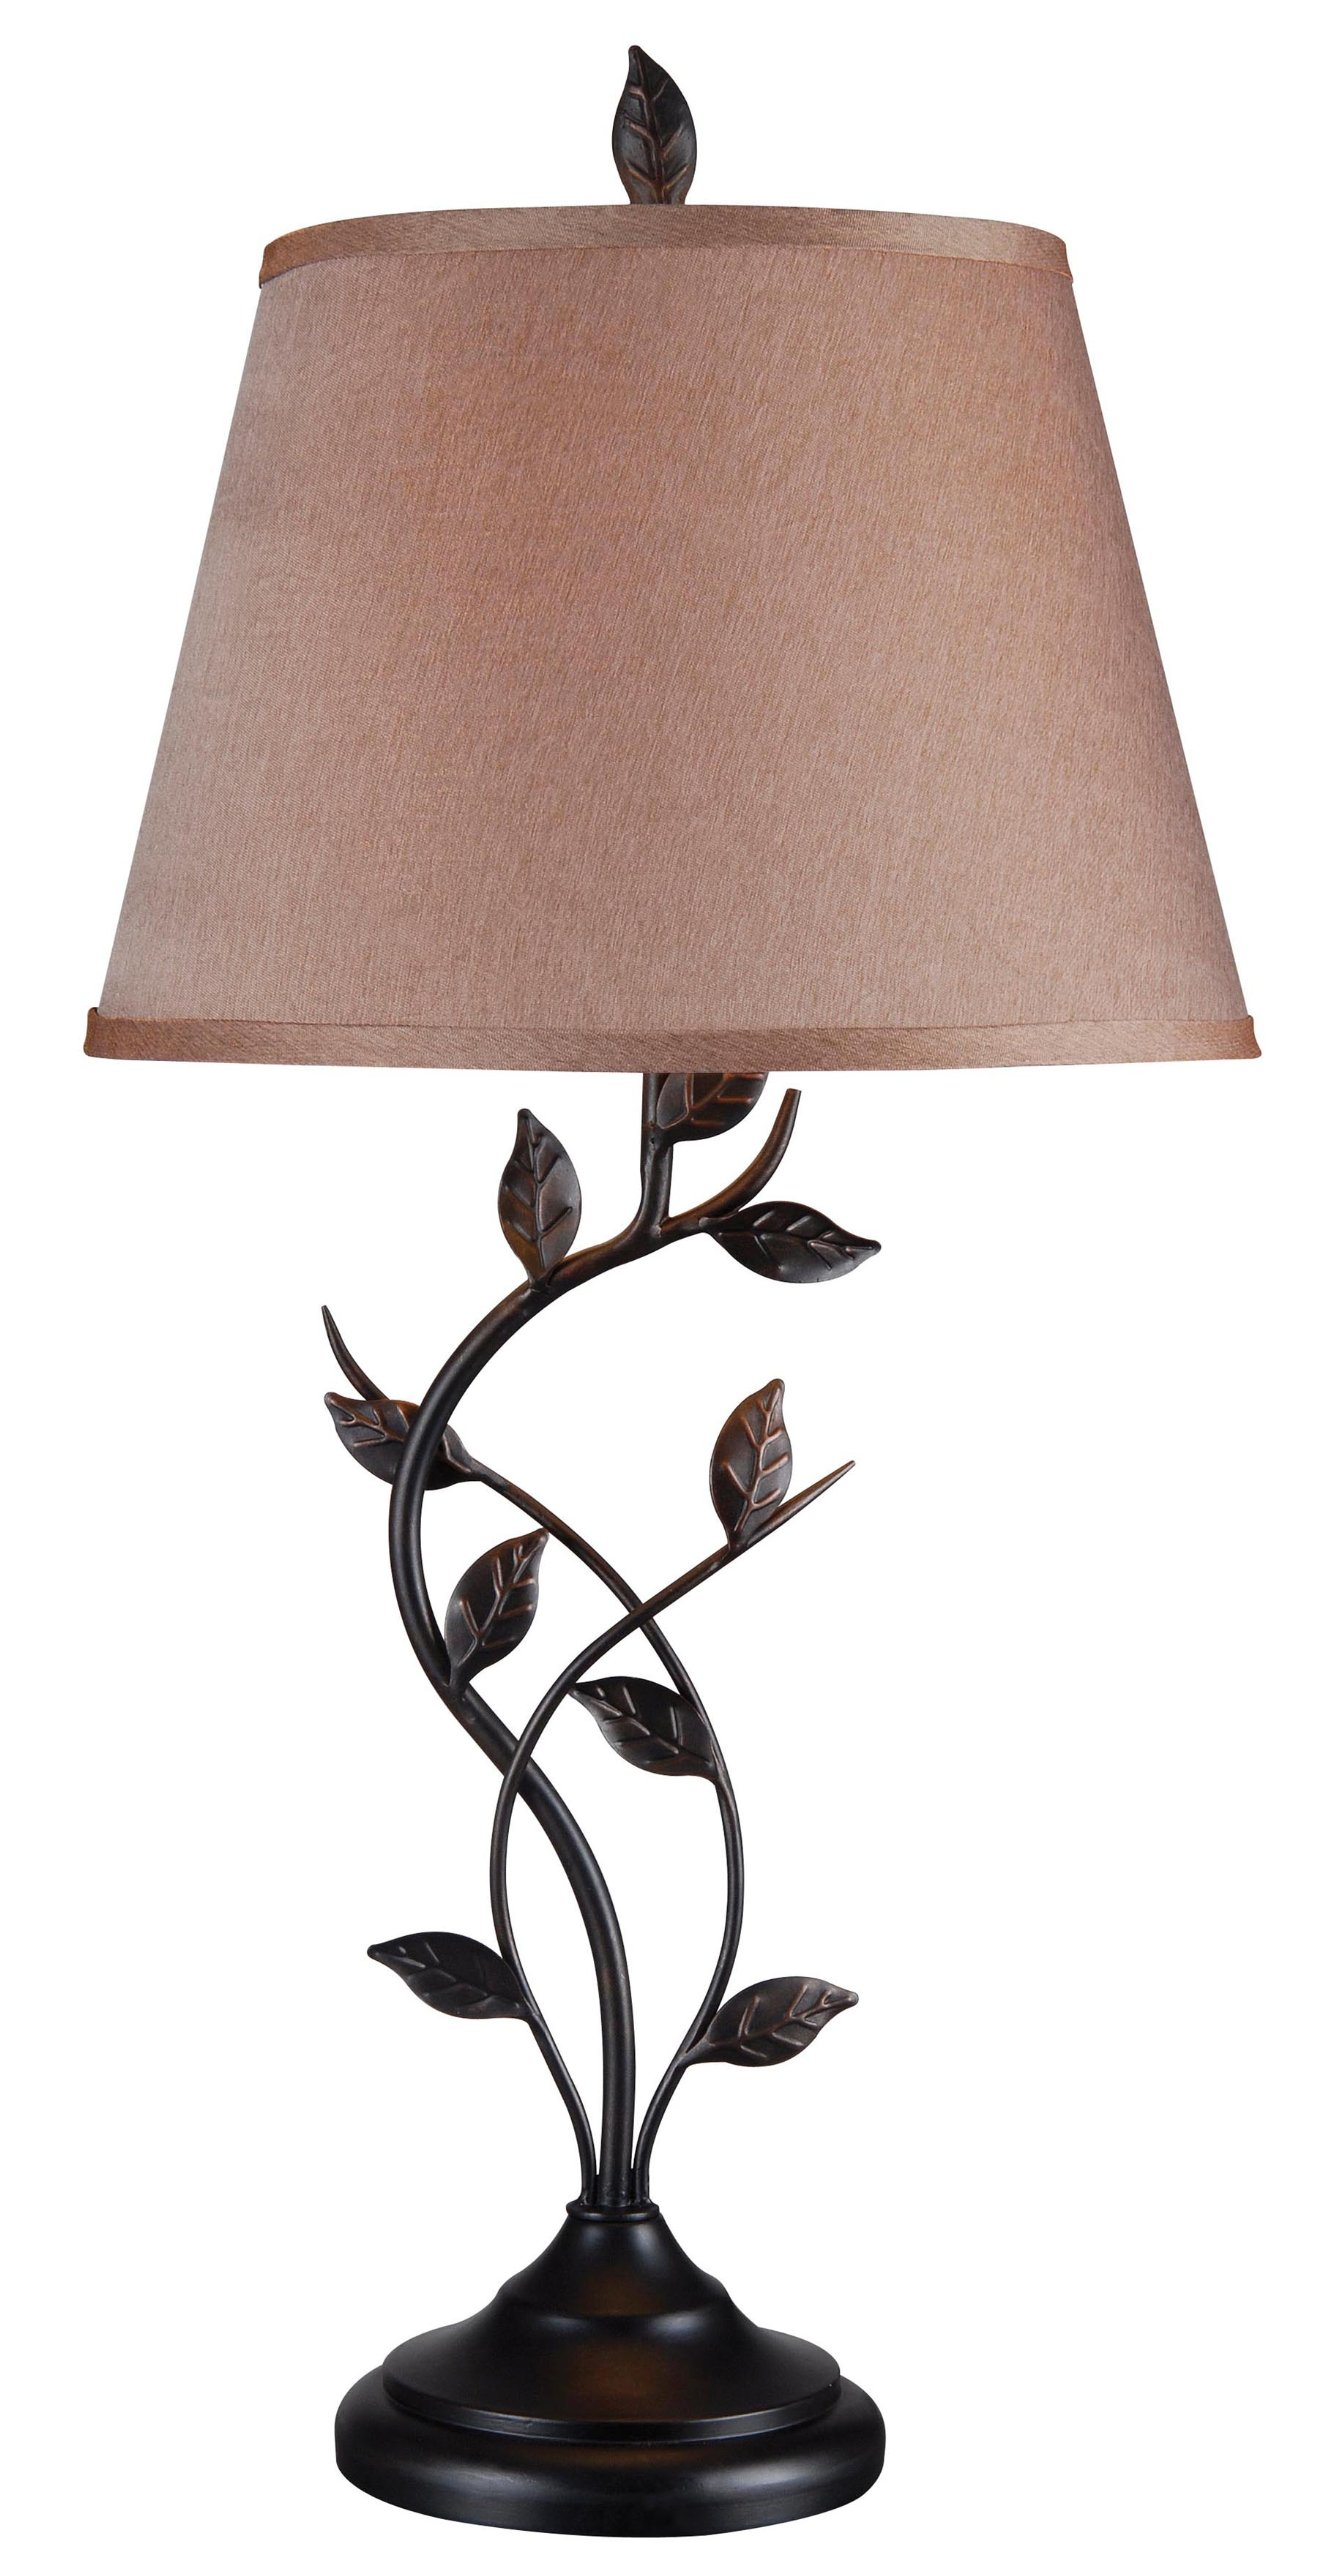 Kenroy Home 32239ORB Ashlen Table Lamp, Oil Rubbed Bronze Finish by Kenroy Home